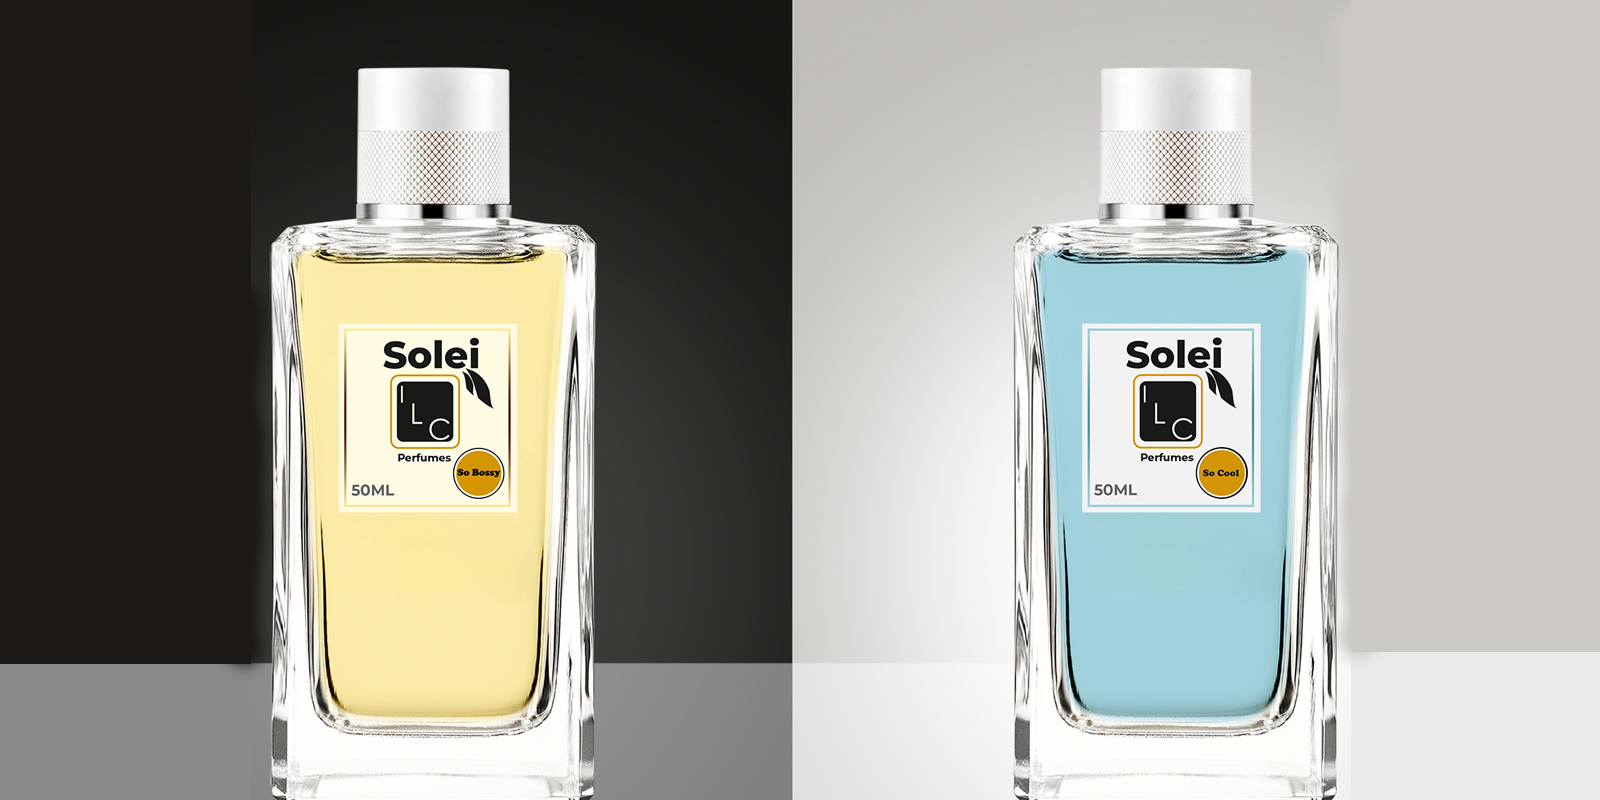 ILC-perfume-cologne-range-so-bossy-so-cool-ranges-50ml-100ml-homepage-slider.png